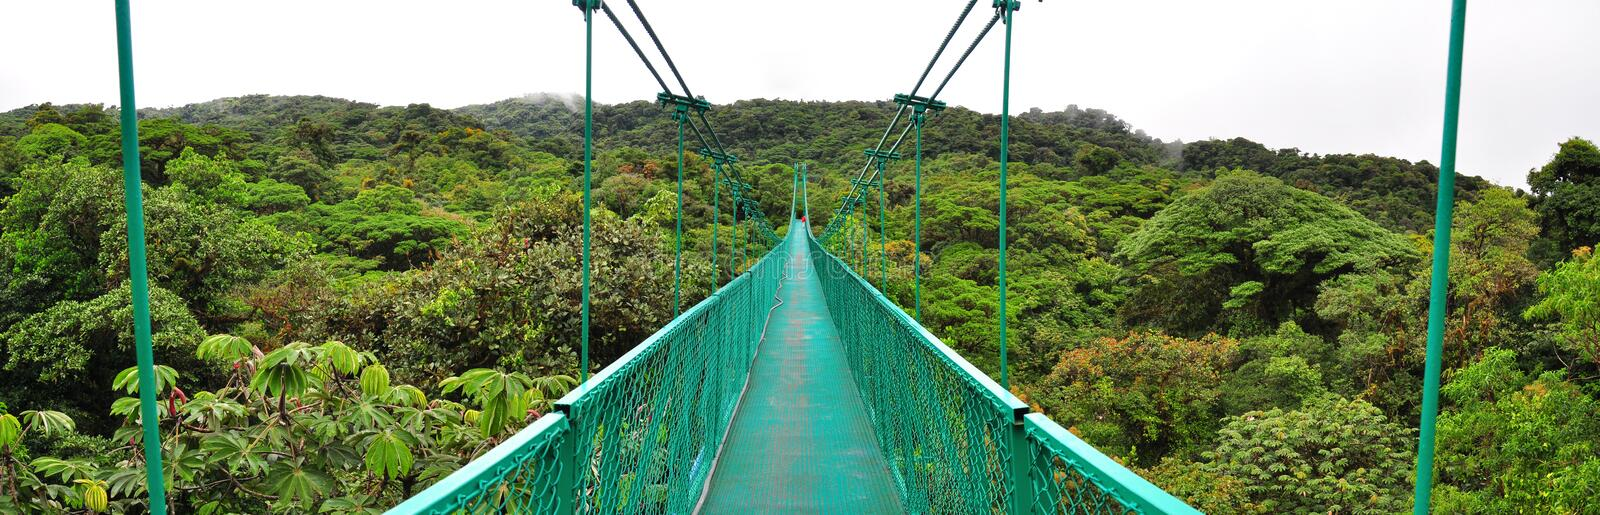 Cloud Forest Hanging Bridge, Costa Rica Royalty Free Stock Photos